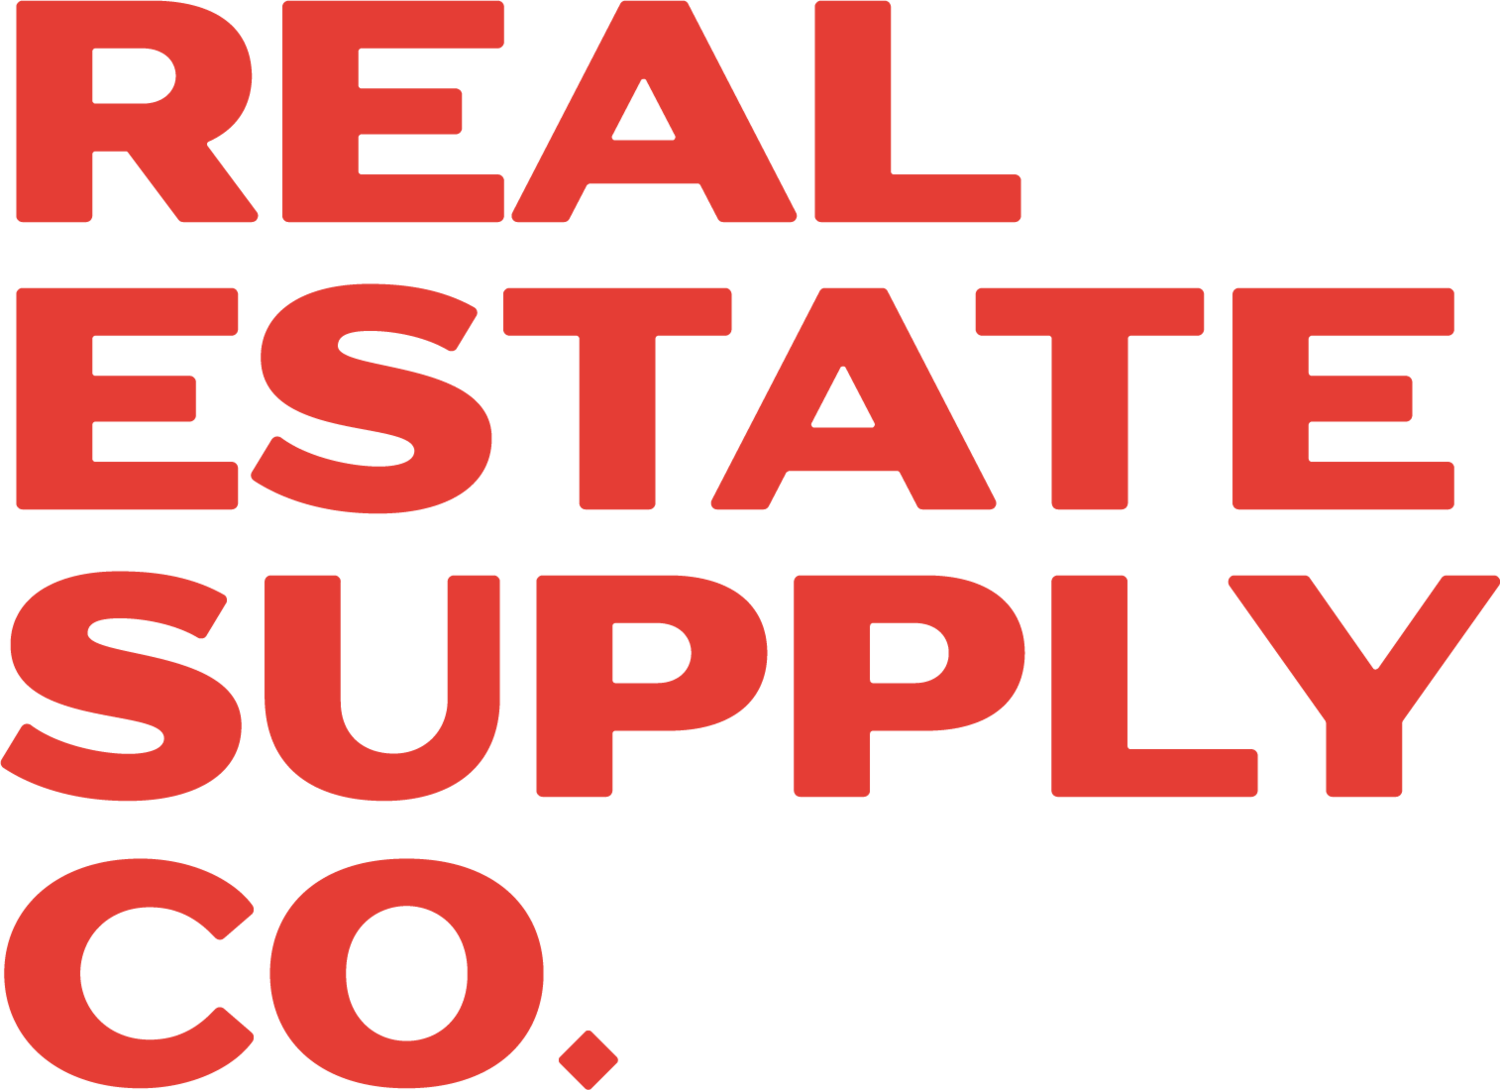 Real Estate Supply Co.